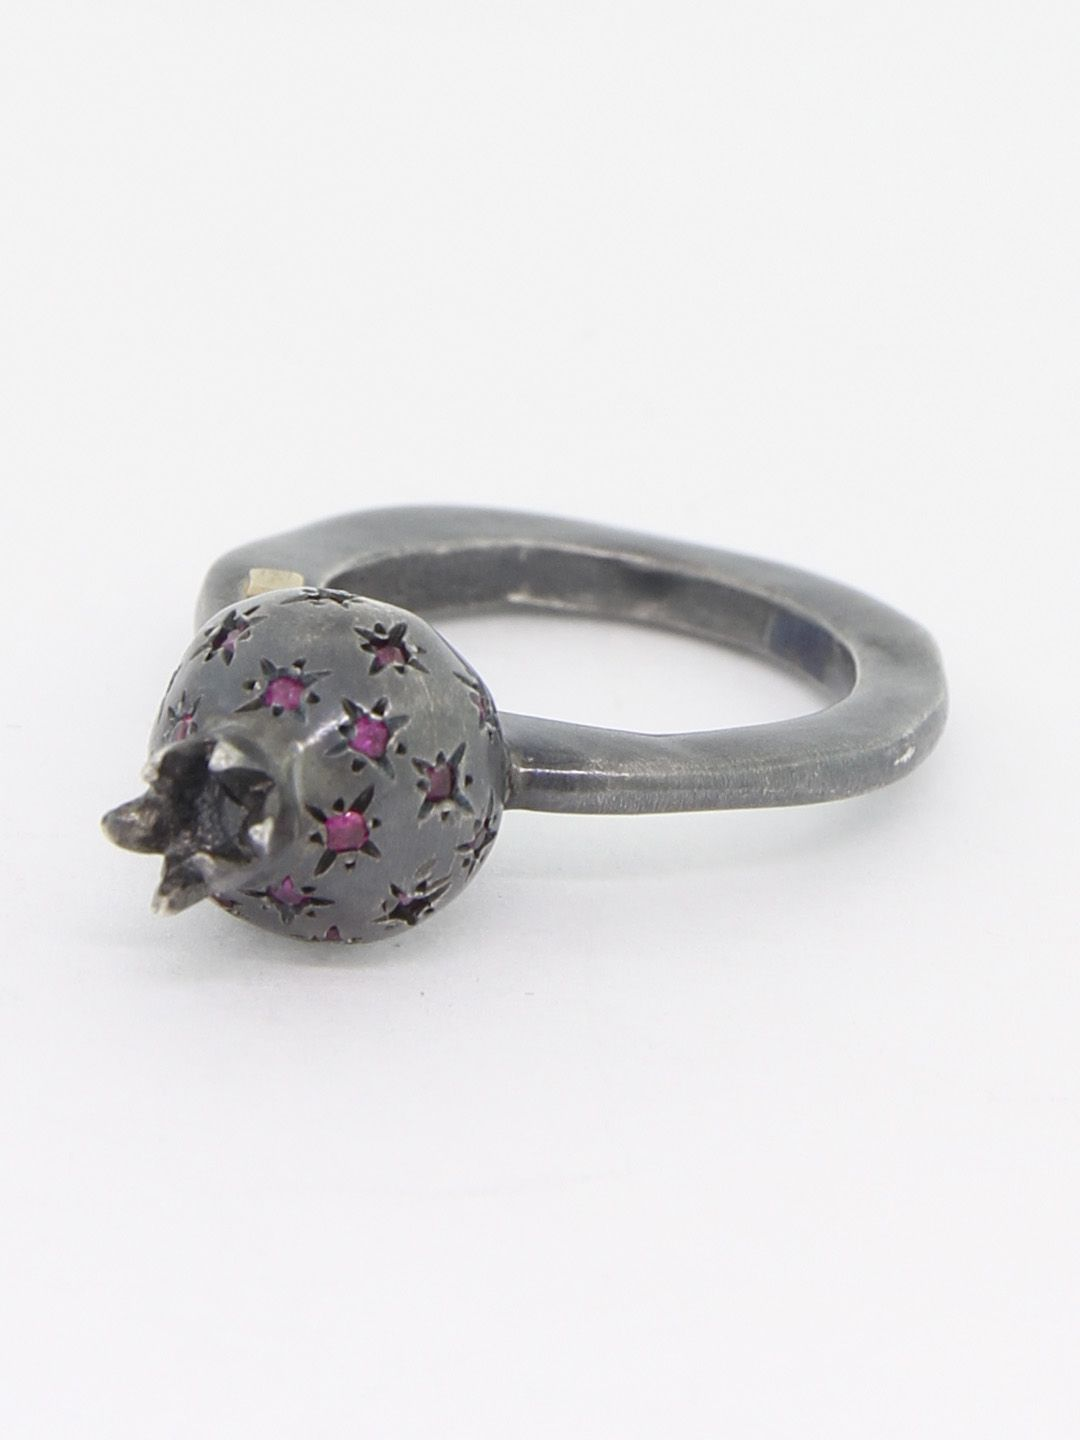 From Rosa Maria, this oxidized silver cocktail ring features a pomegranate fruit embellished with rose-cut rubies set into cross-hatched stars, the irregular shape of the band is a classic characteristic in Rosa Maria jewelry